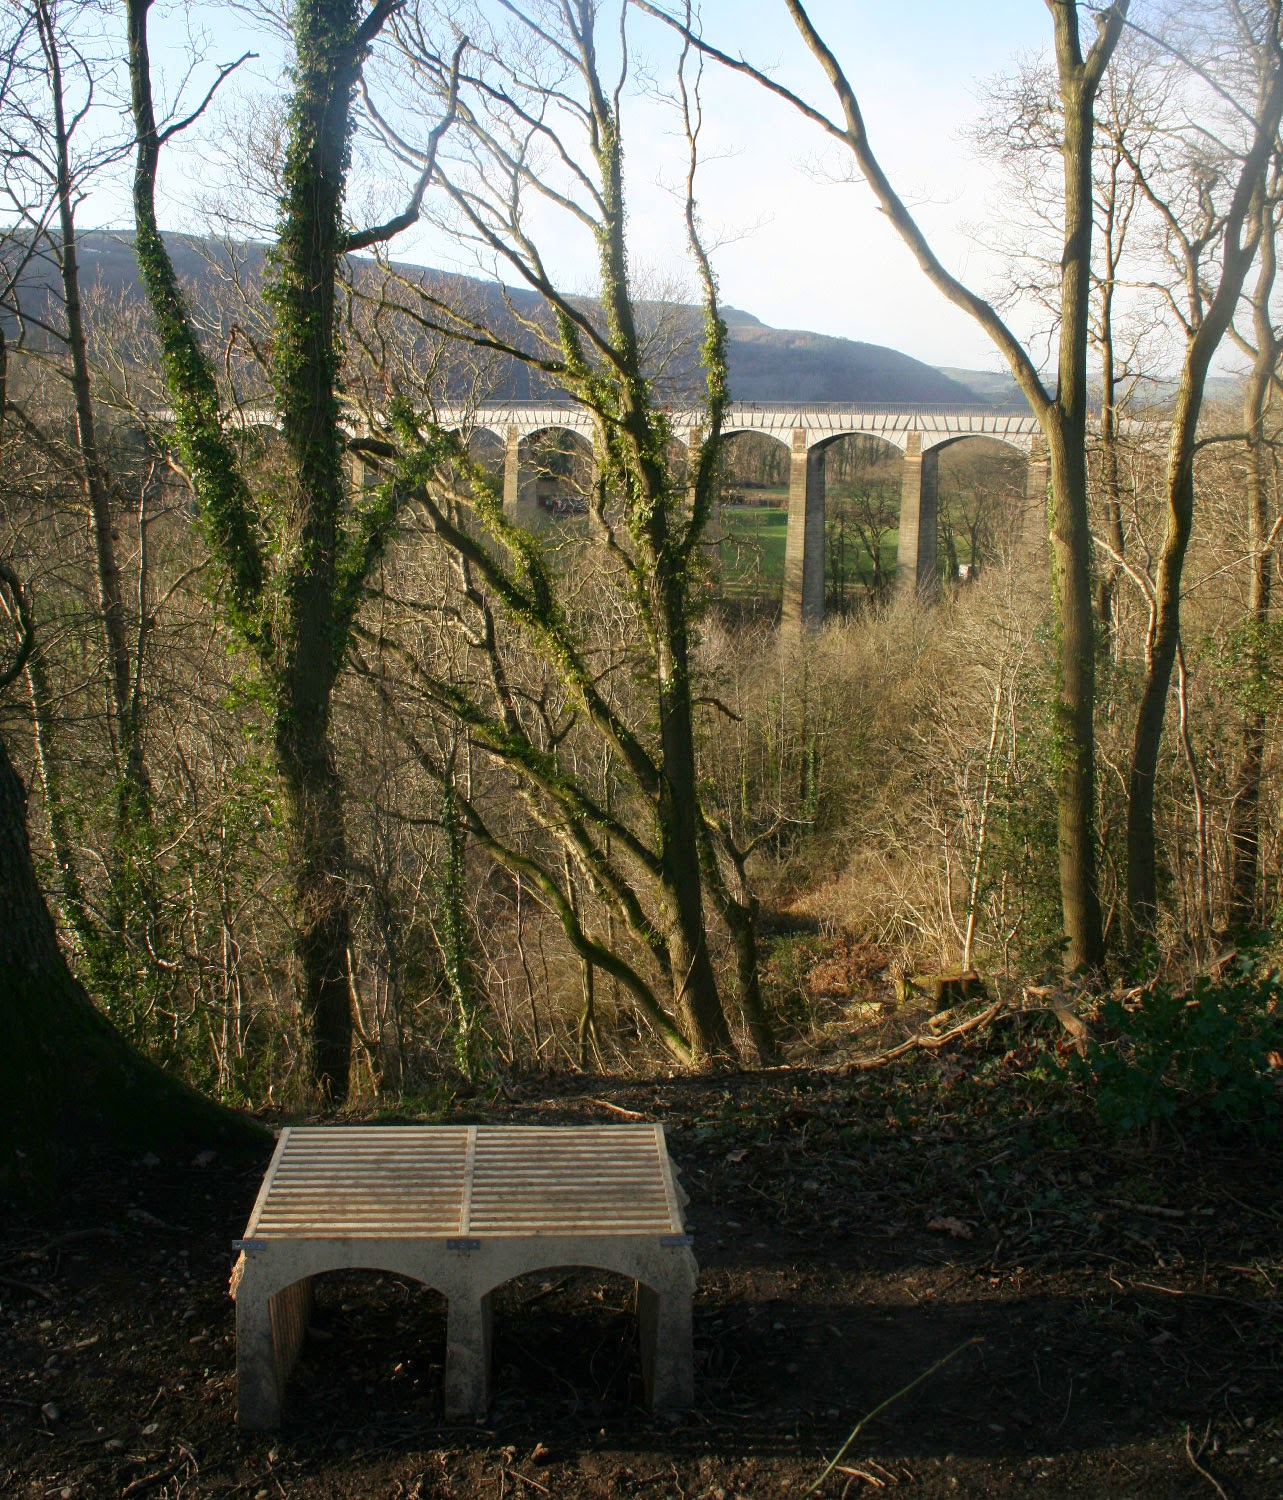 The viewpoint, with concrete step for short people